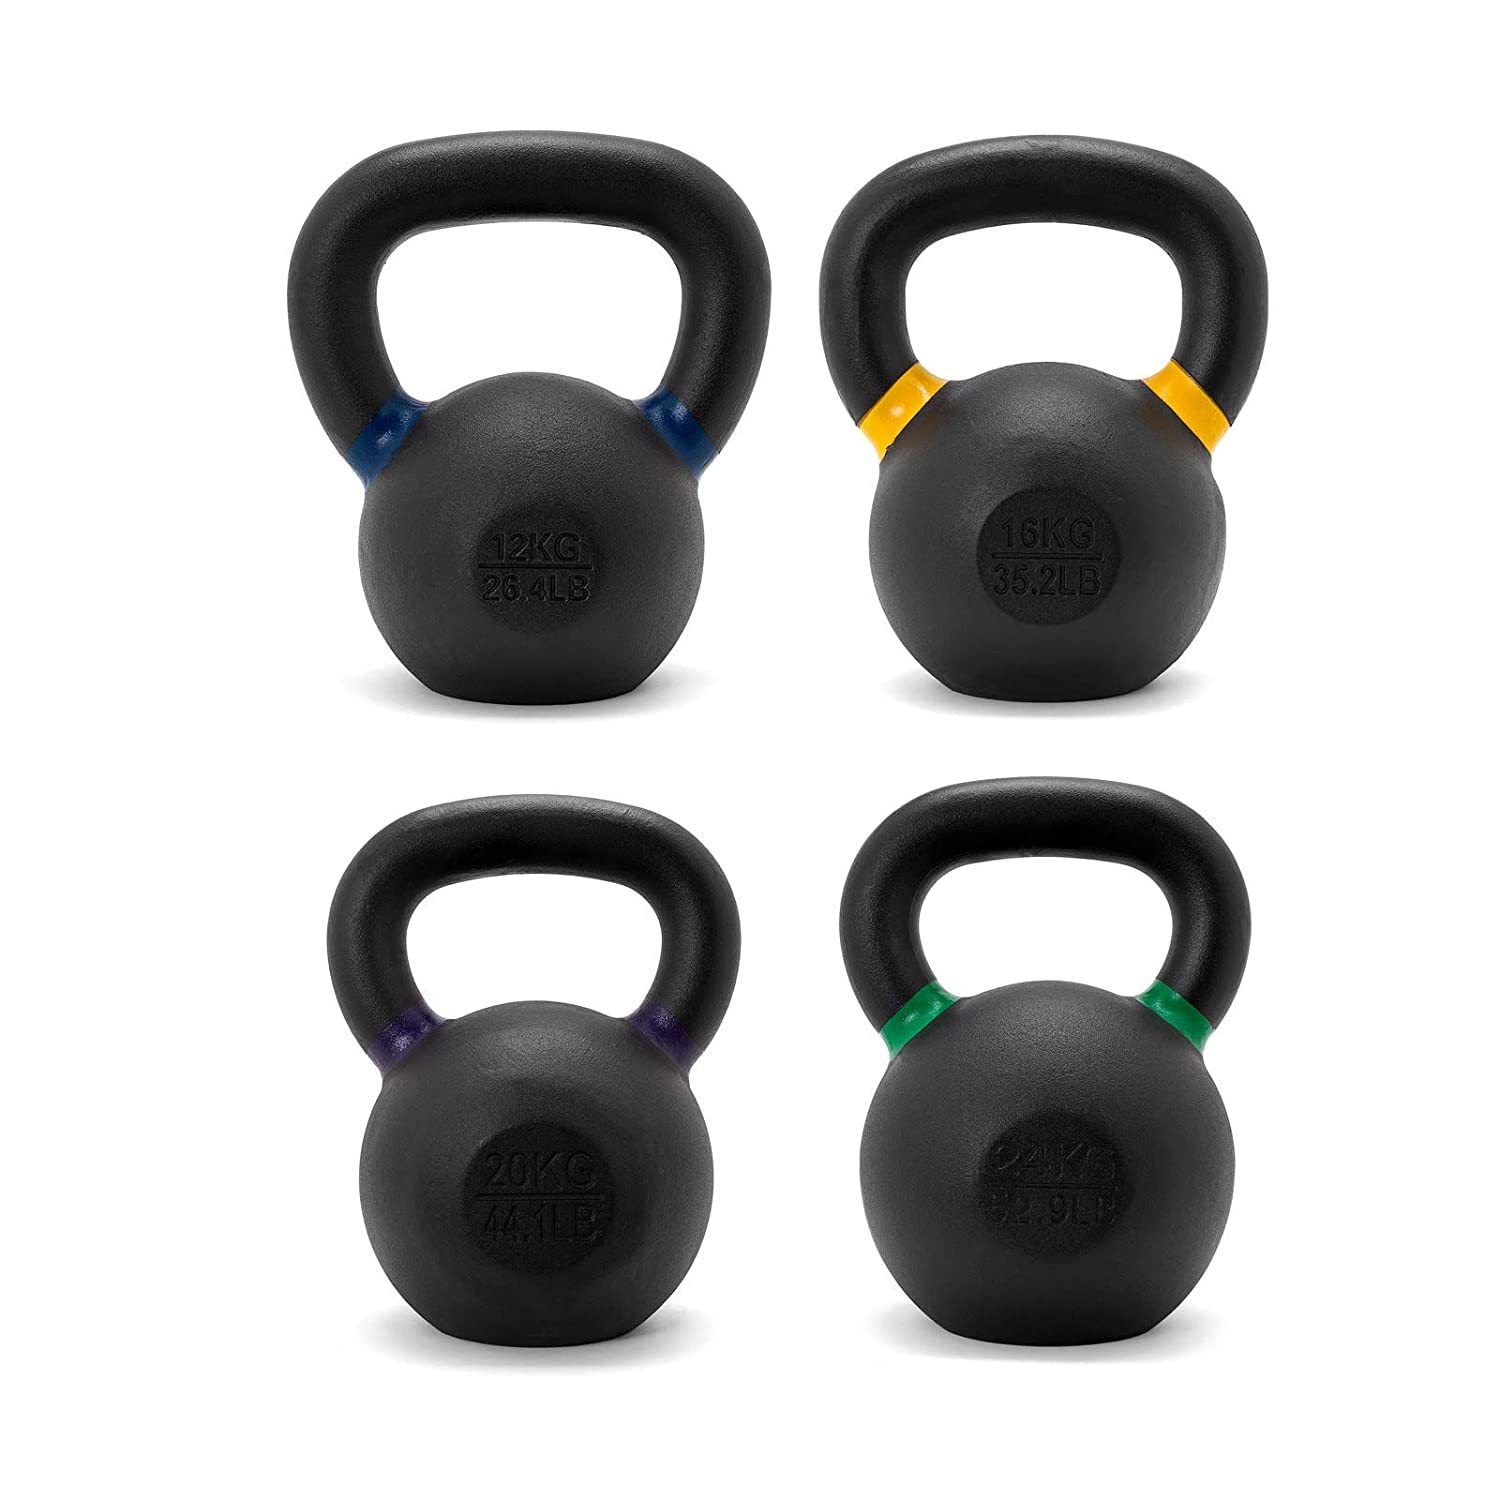 Solid Cast Iron Kettlebellセット12 / 16 / 20 / 24kg forクロスフィット、強度、Conditioningトレーニング